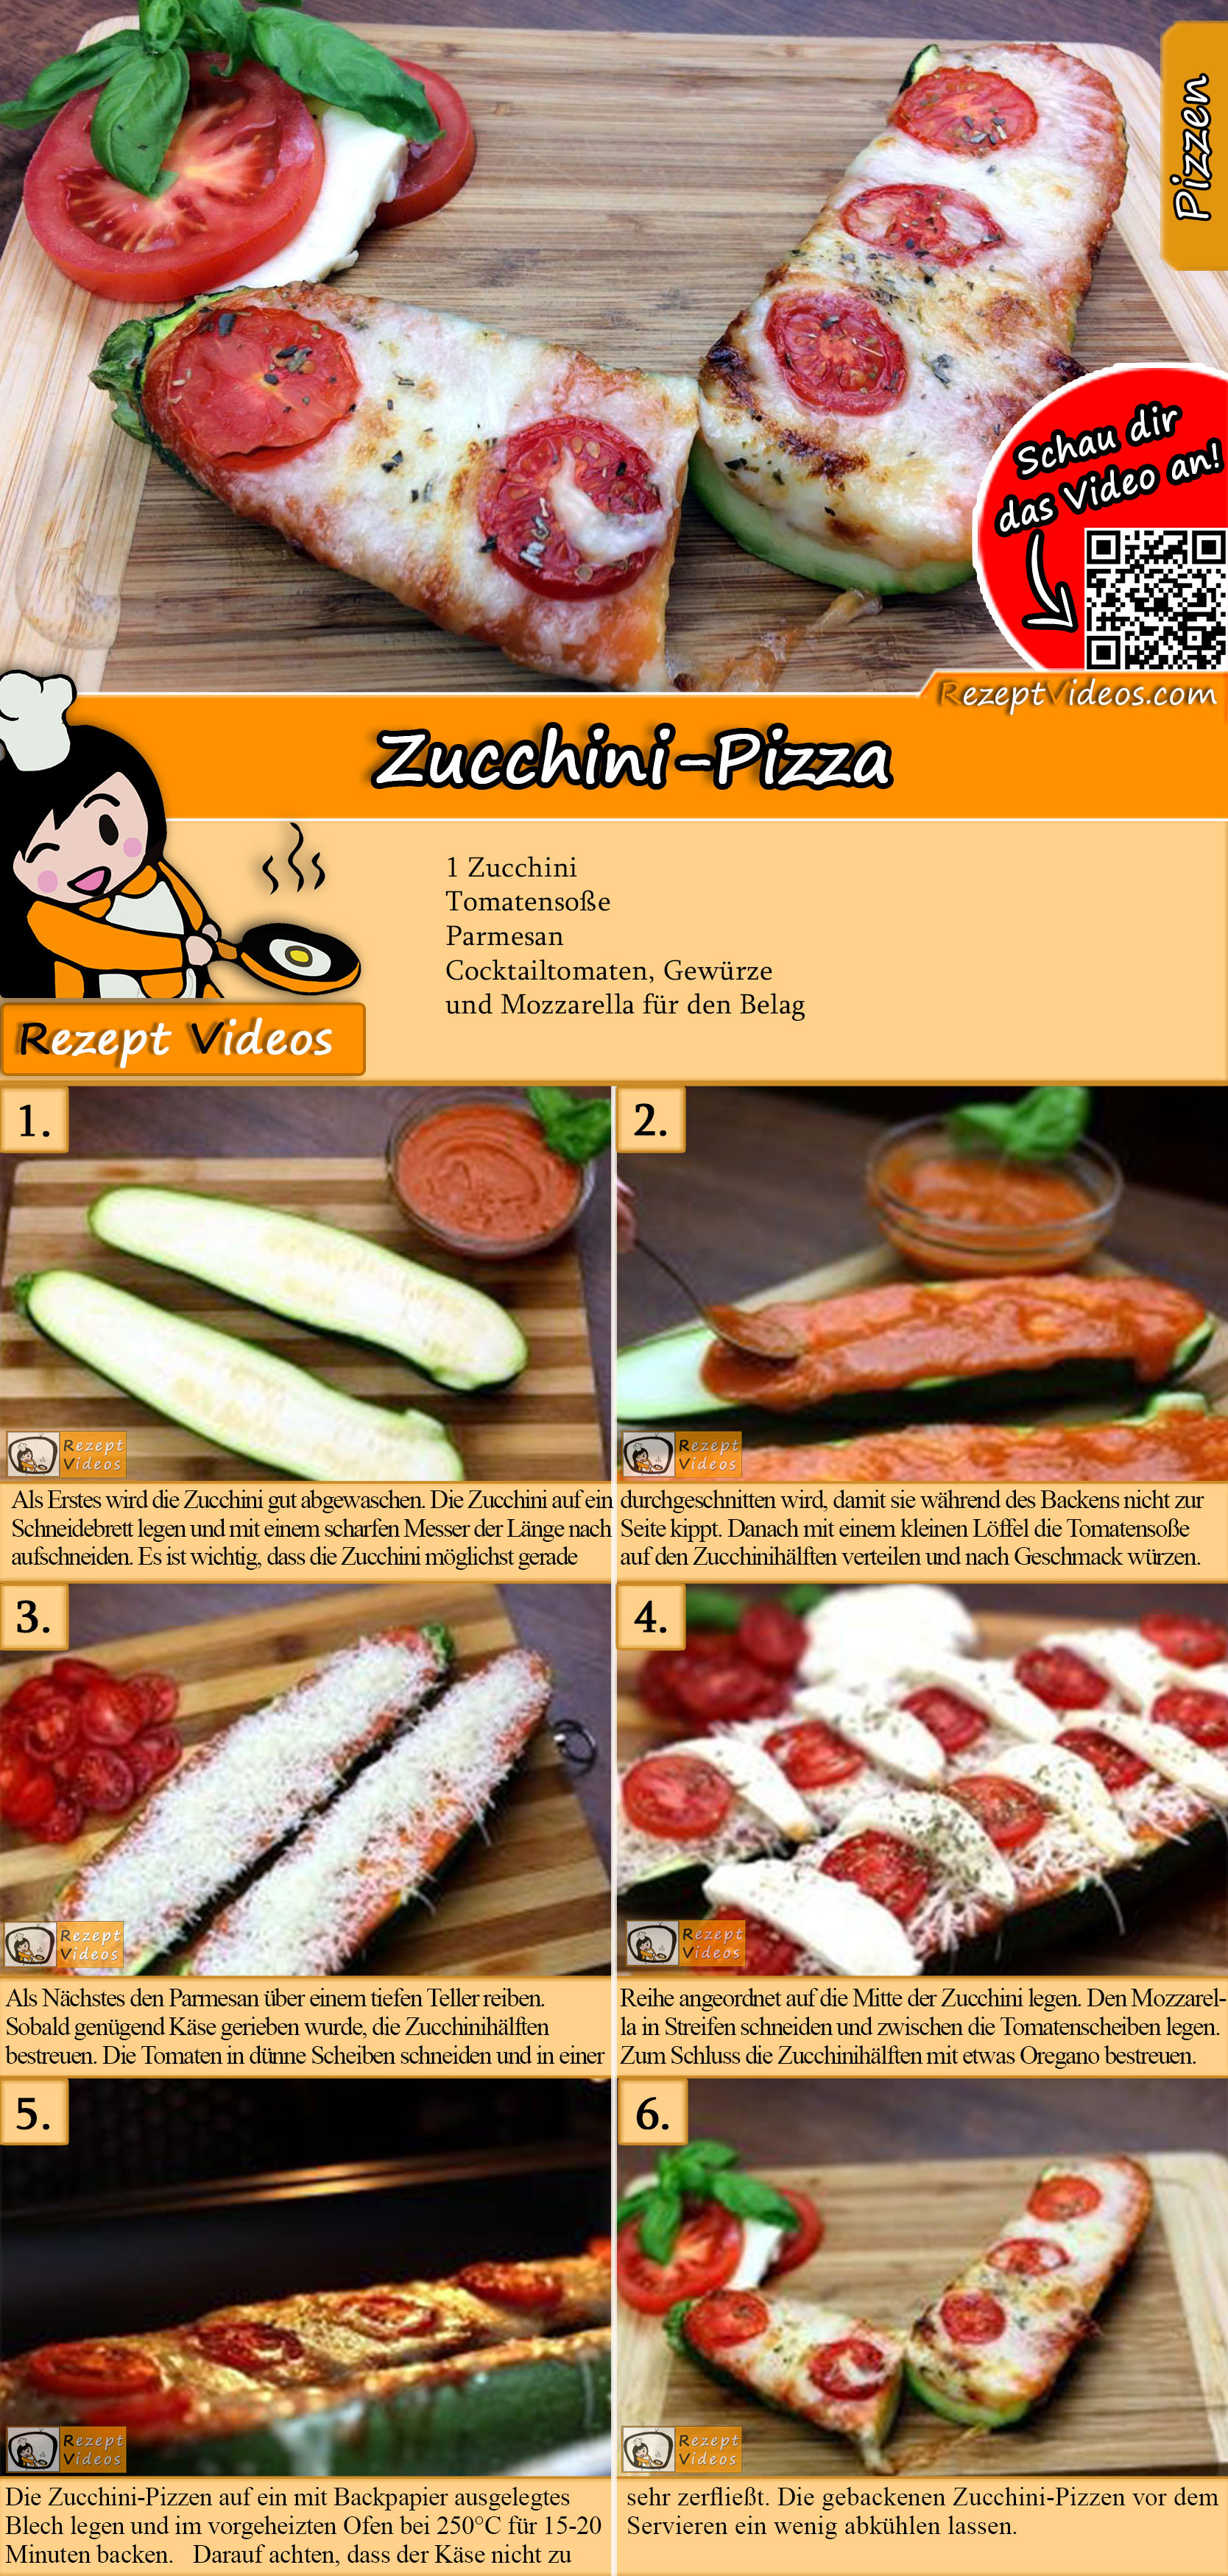 Zucchini-Pizza Rezept mit Video